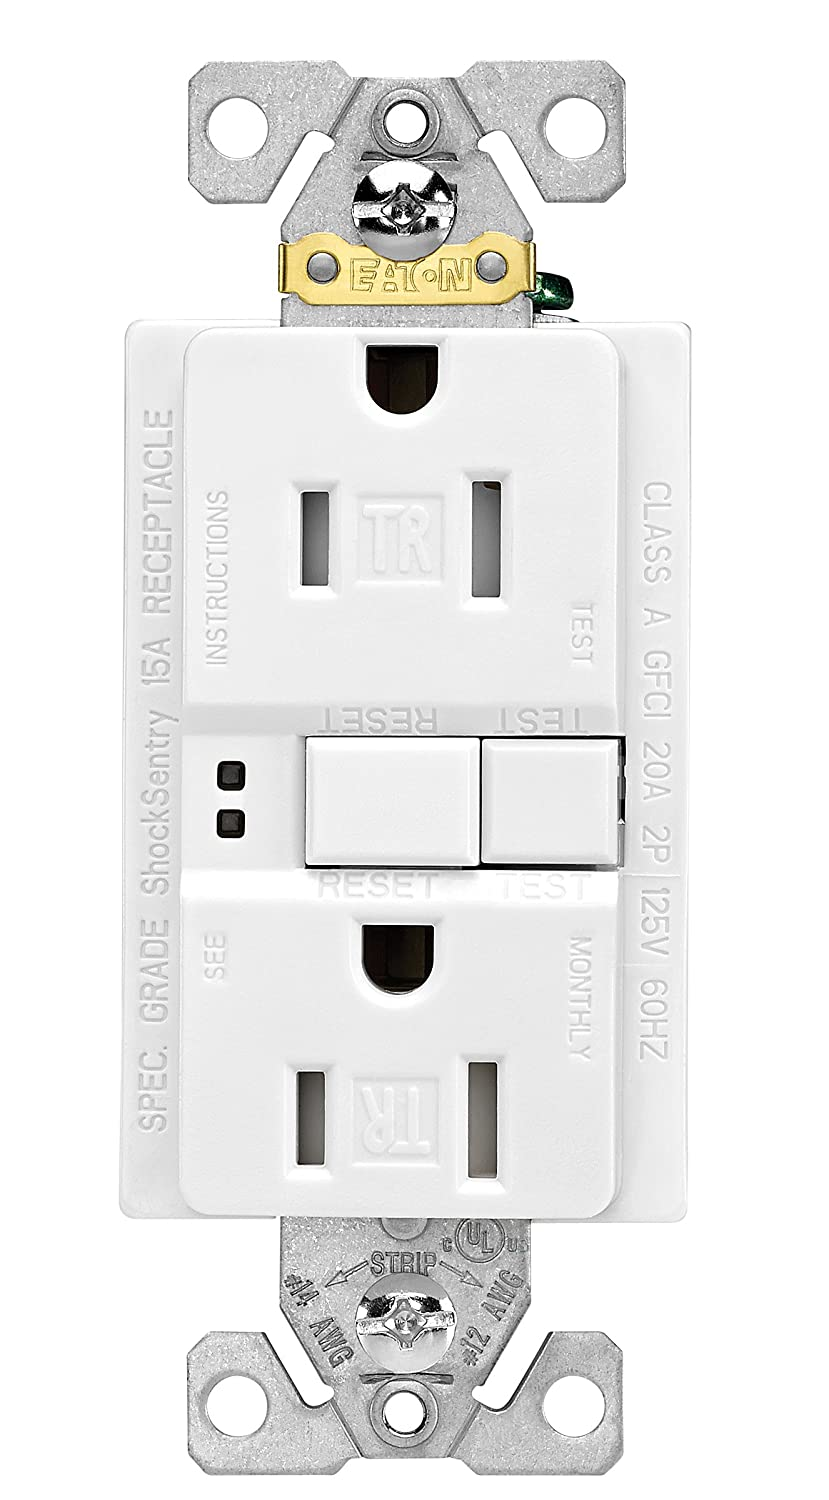 Eaton Gfci Self Test 15a 125v Tamper Resistant Duplex Receptacle 3 Gfi 15 20 Amp Tr Outlet Weather Pro Pack White